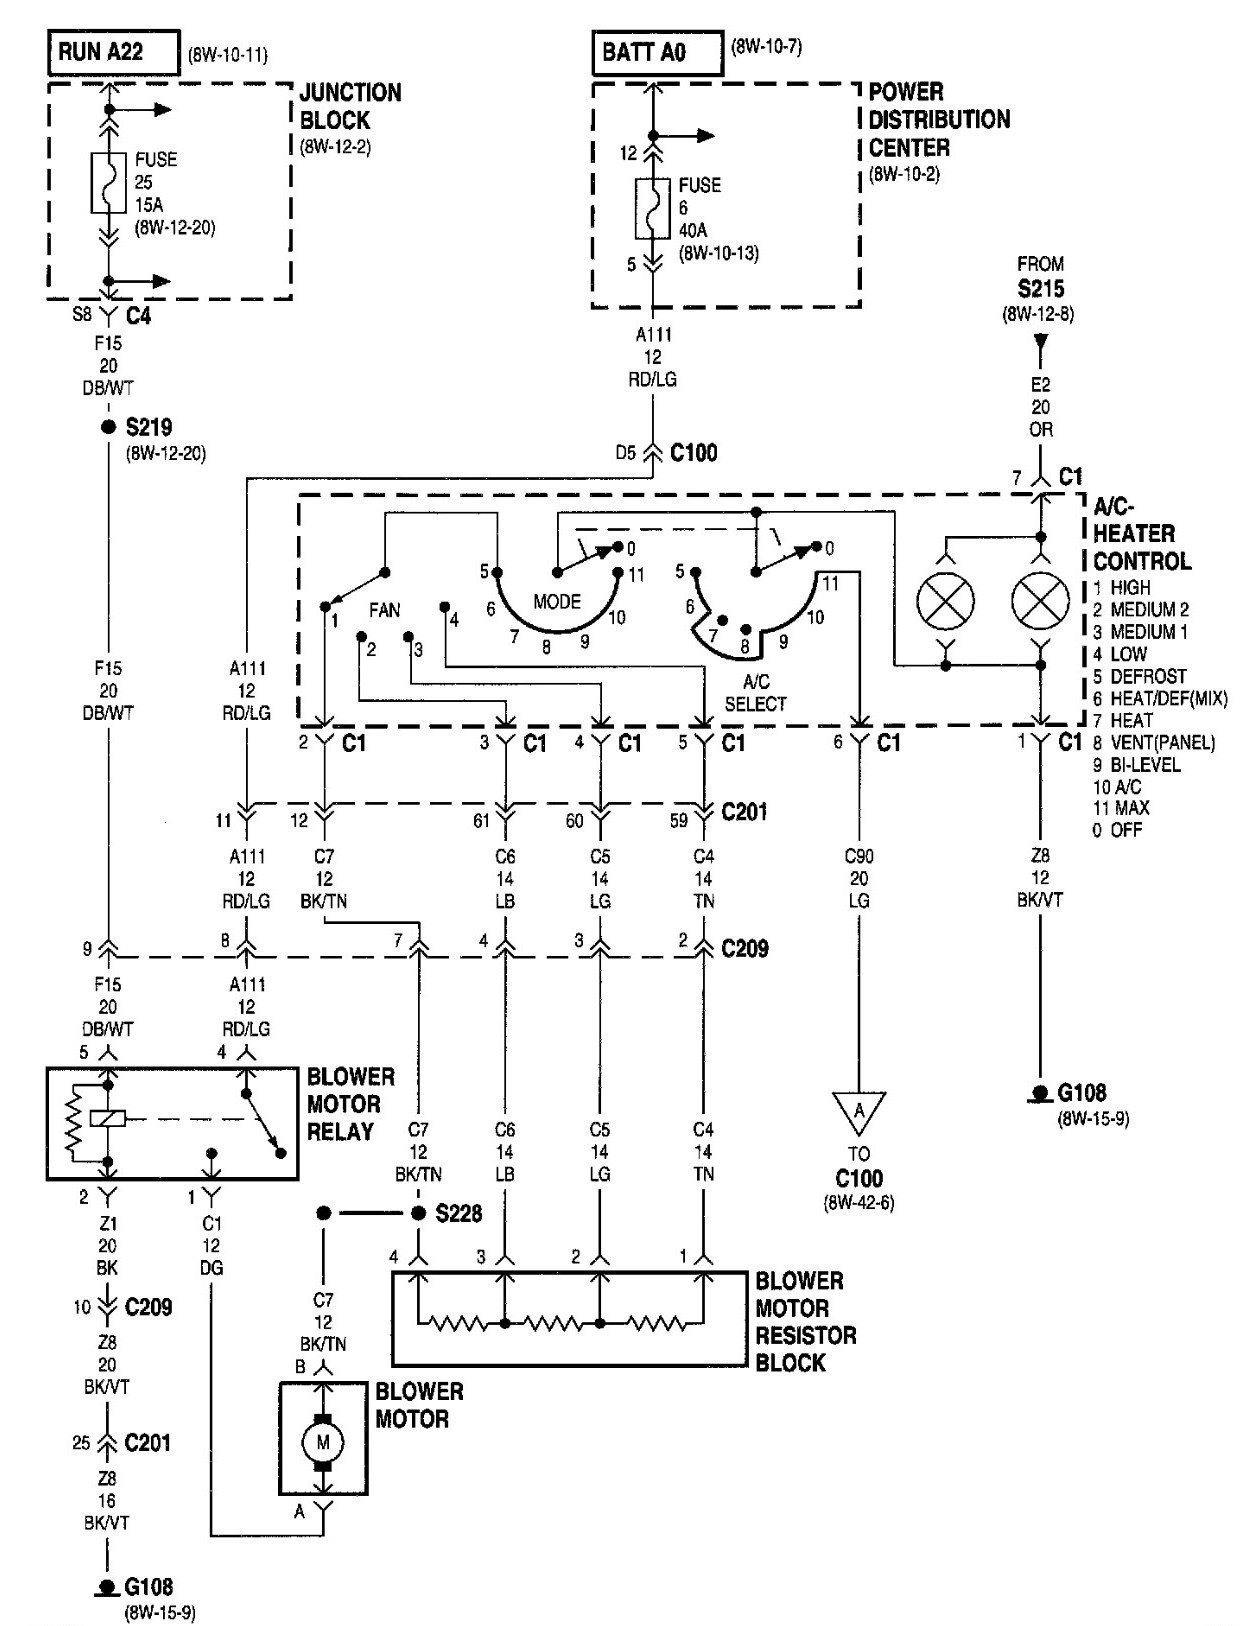 wiring diagramm jeep grand cherokee wh problem solving diagram 2005 engine library